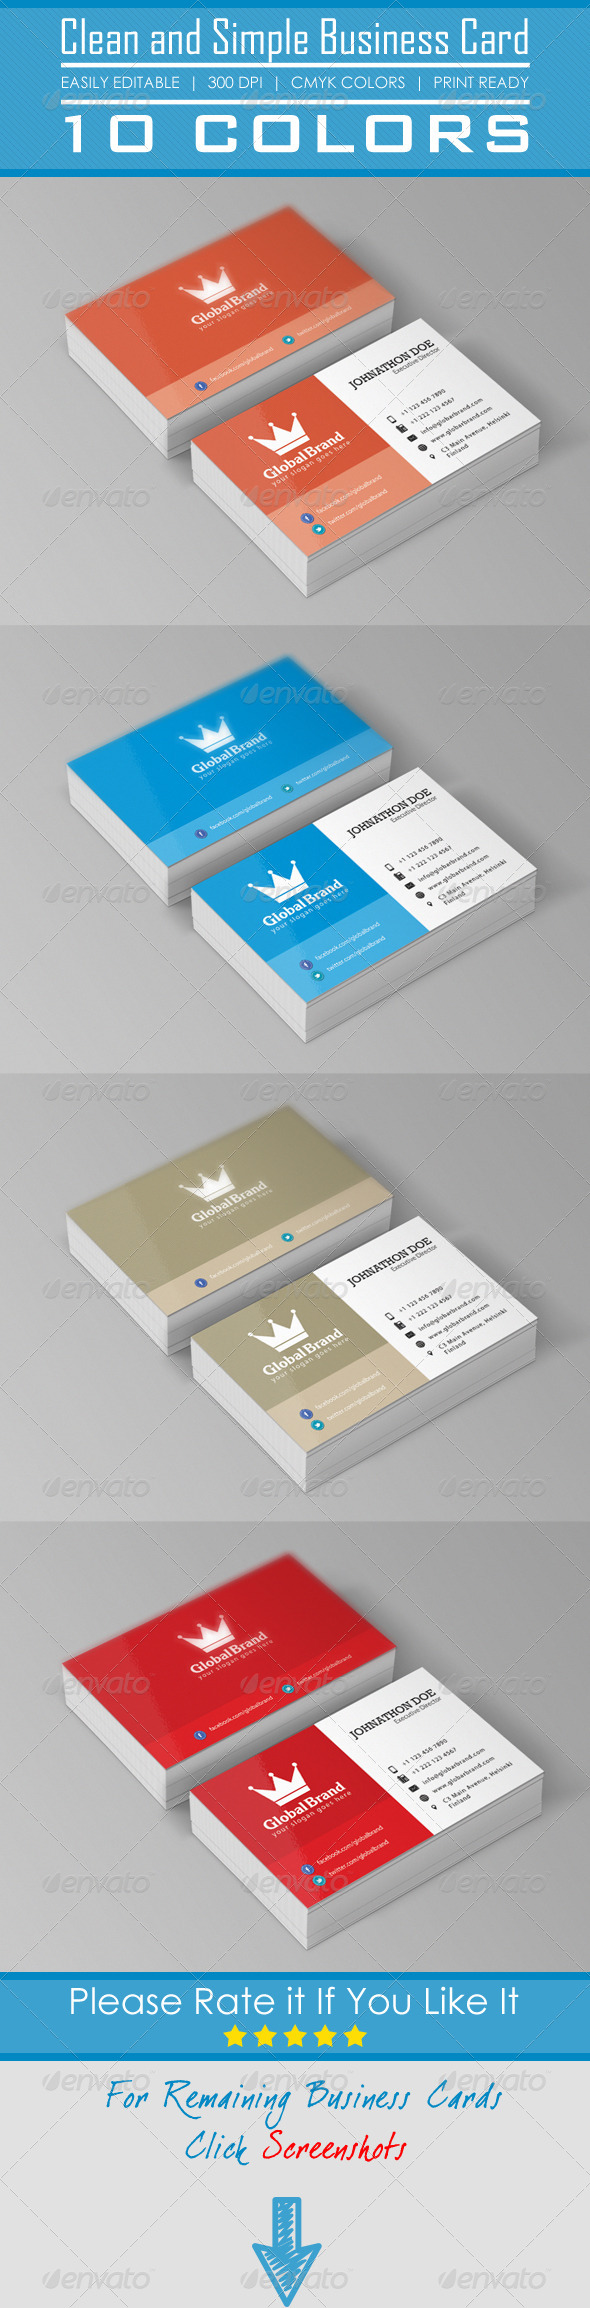 Clean and simple business card pinterest simple business cards clean and simple business card photoshop psd metro business cards professional business cards available here reheart Choice Image